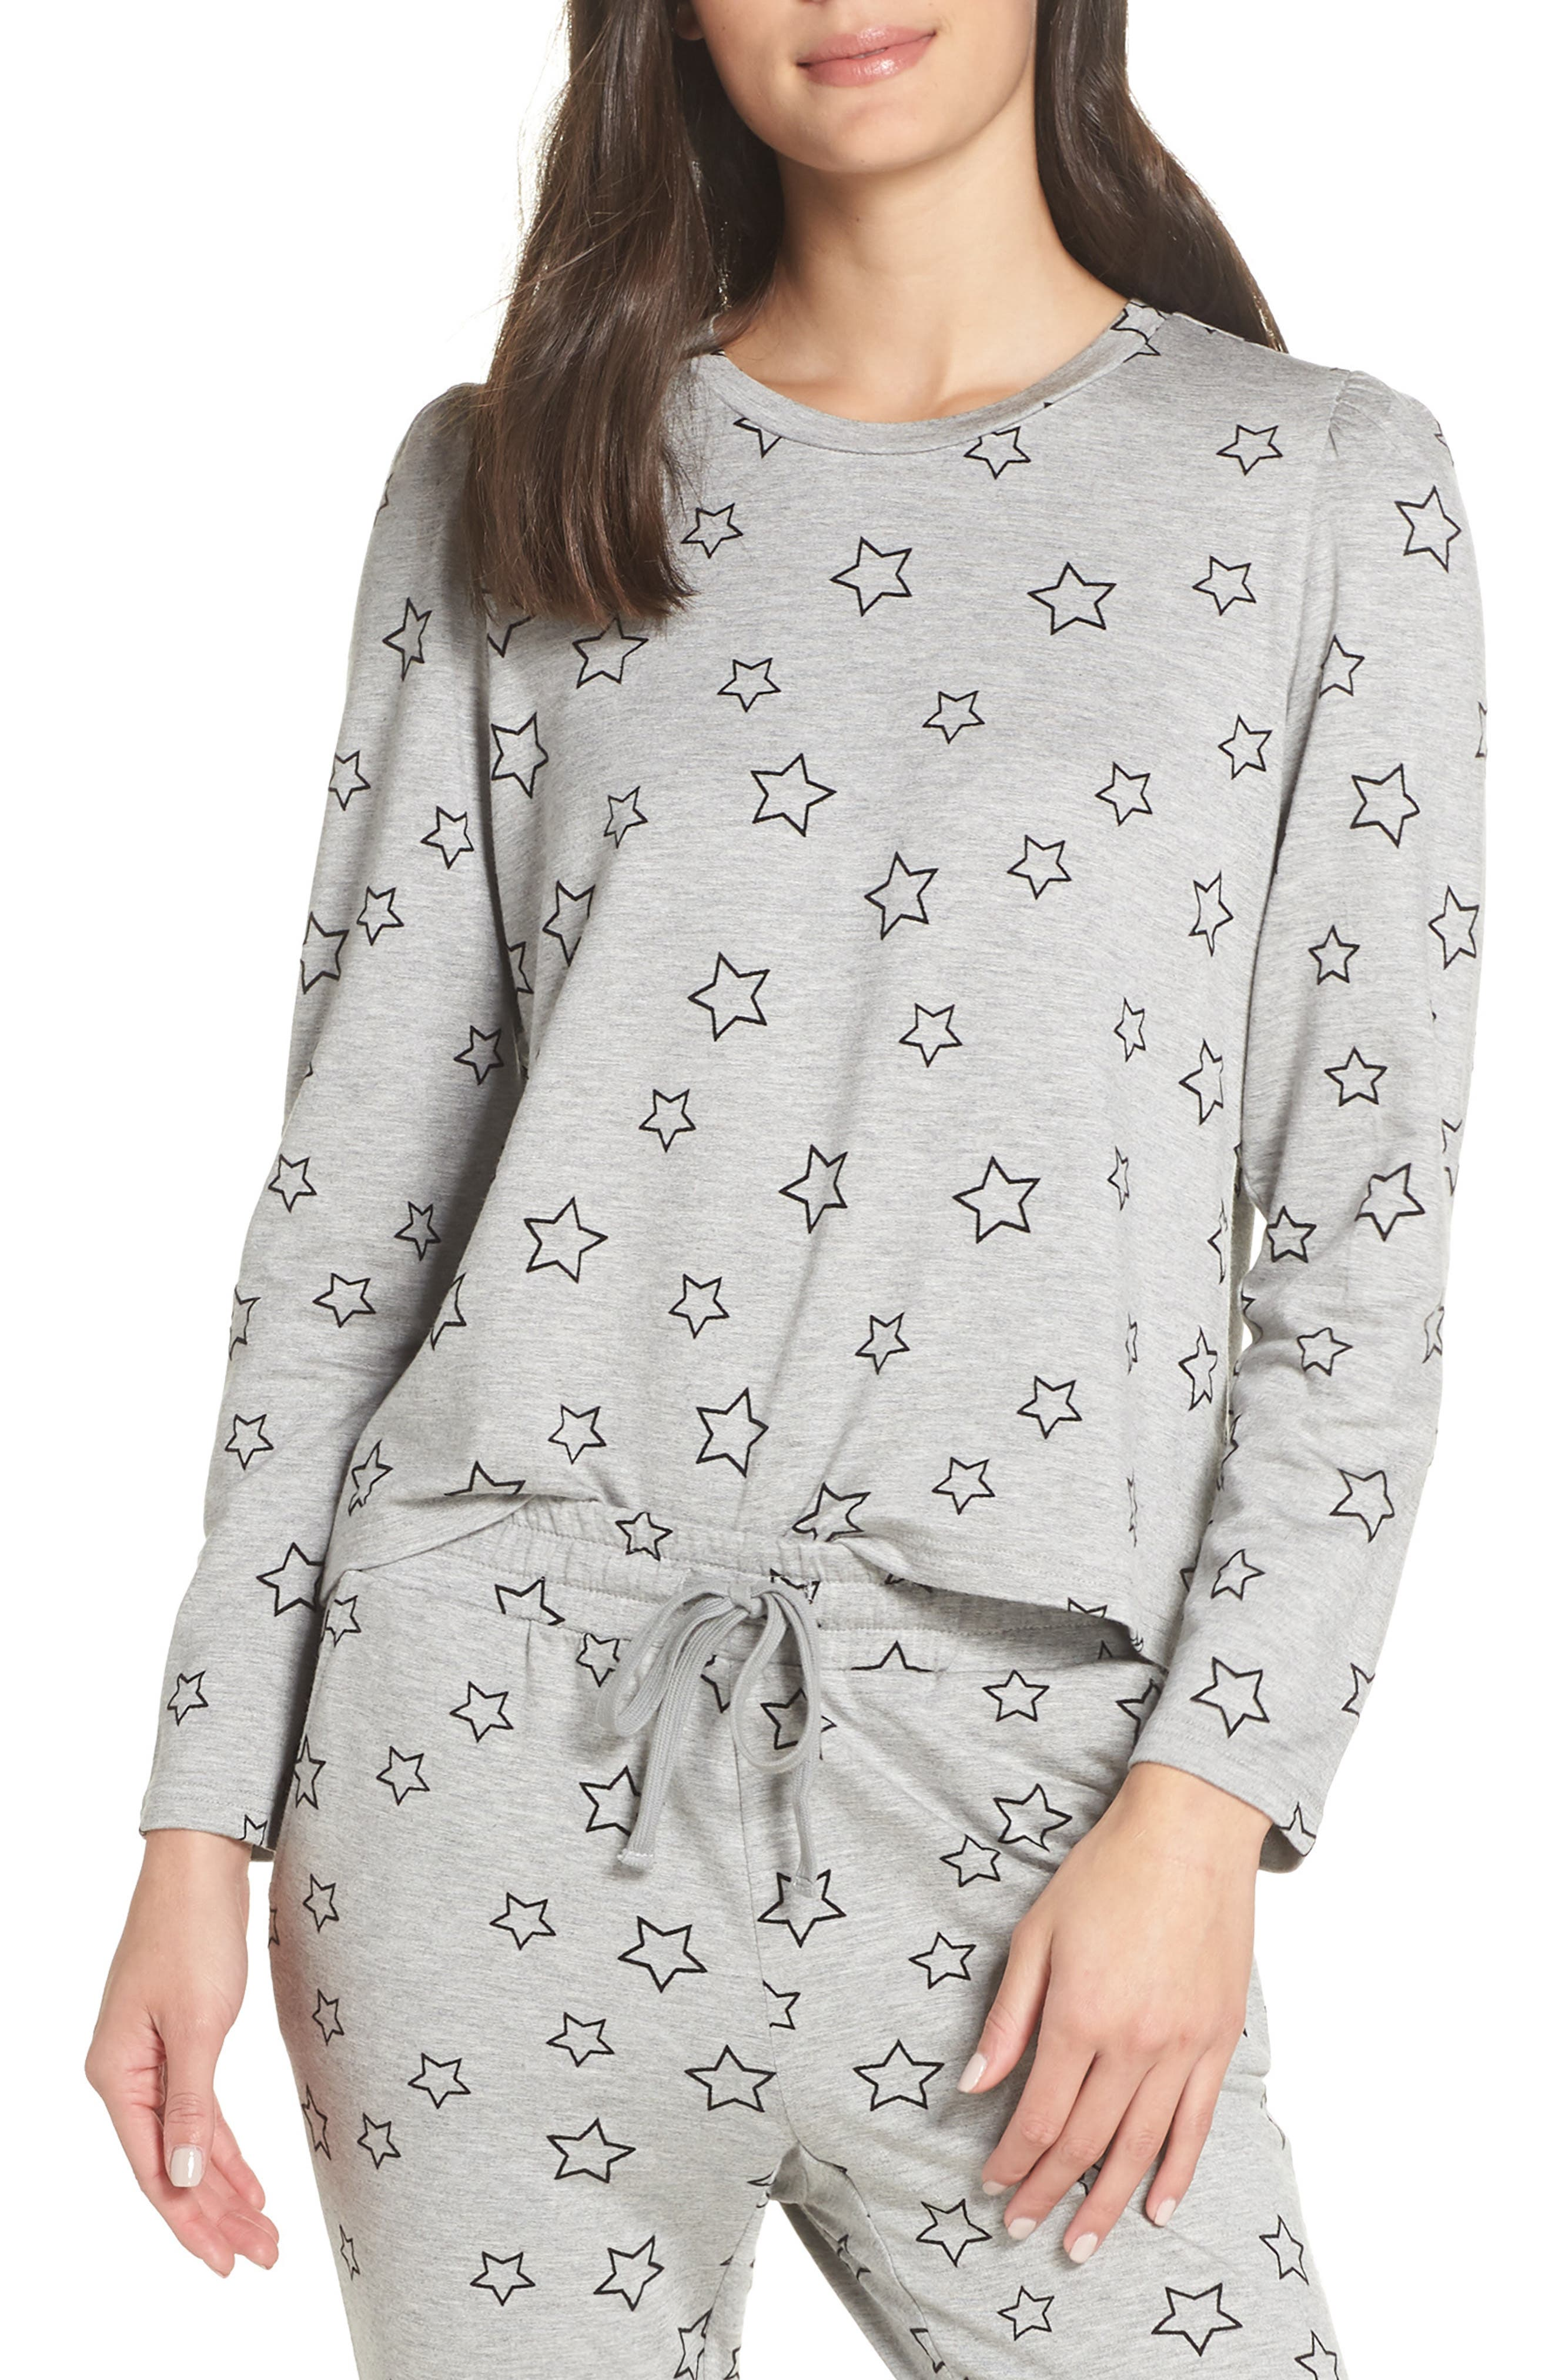 Seeing Stars Top in Heather Grey